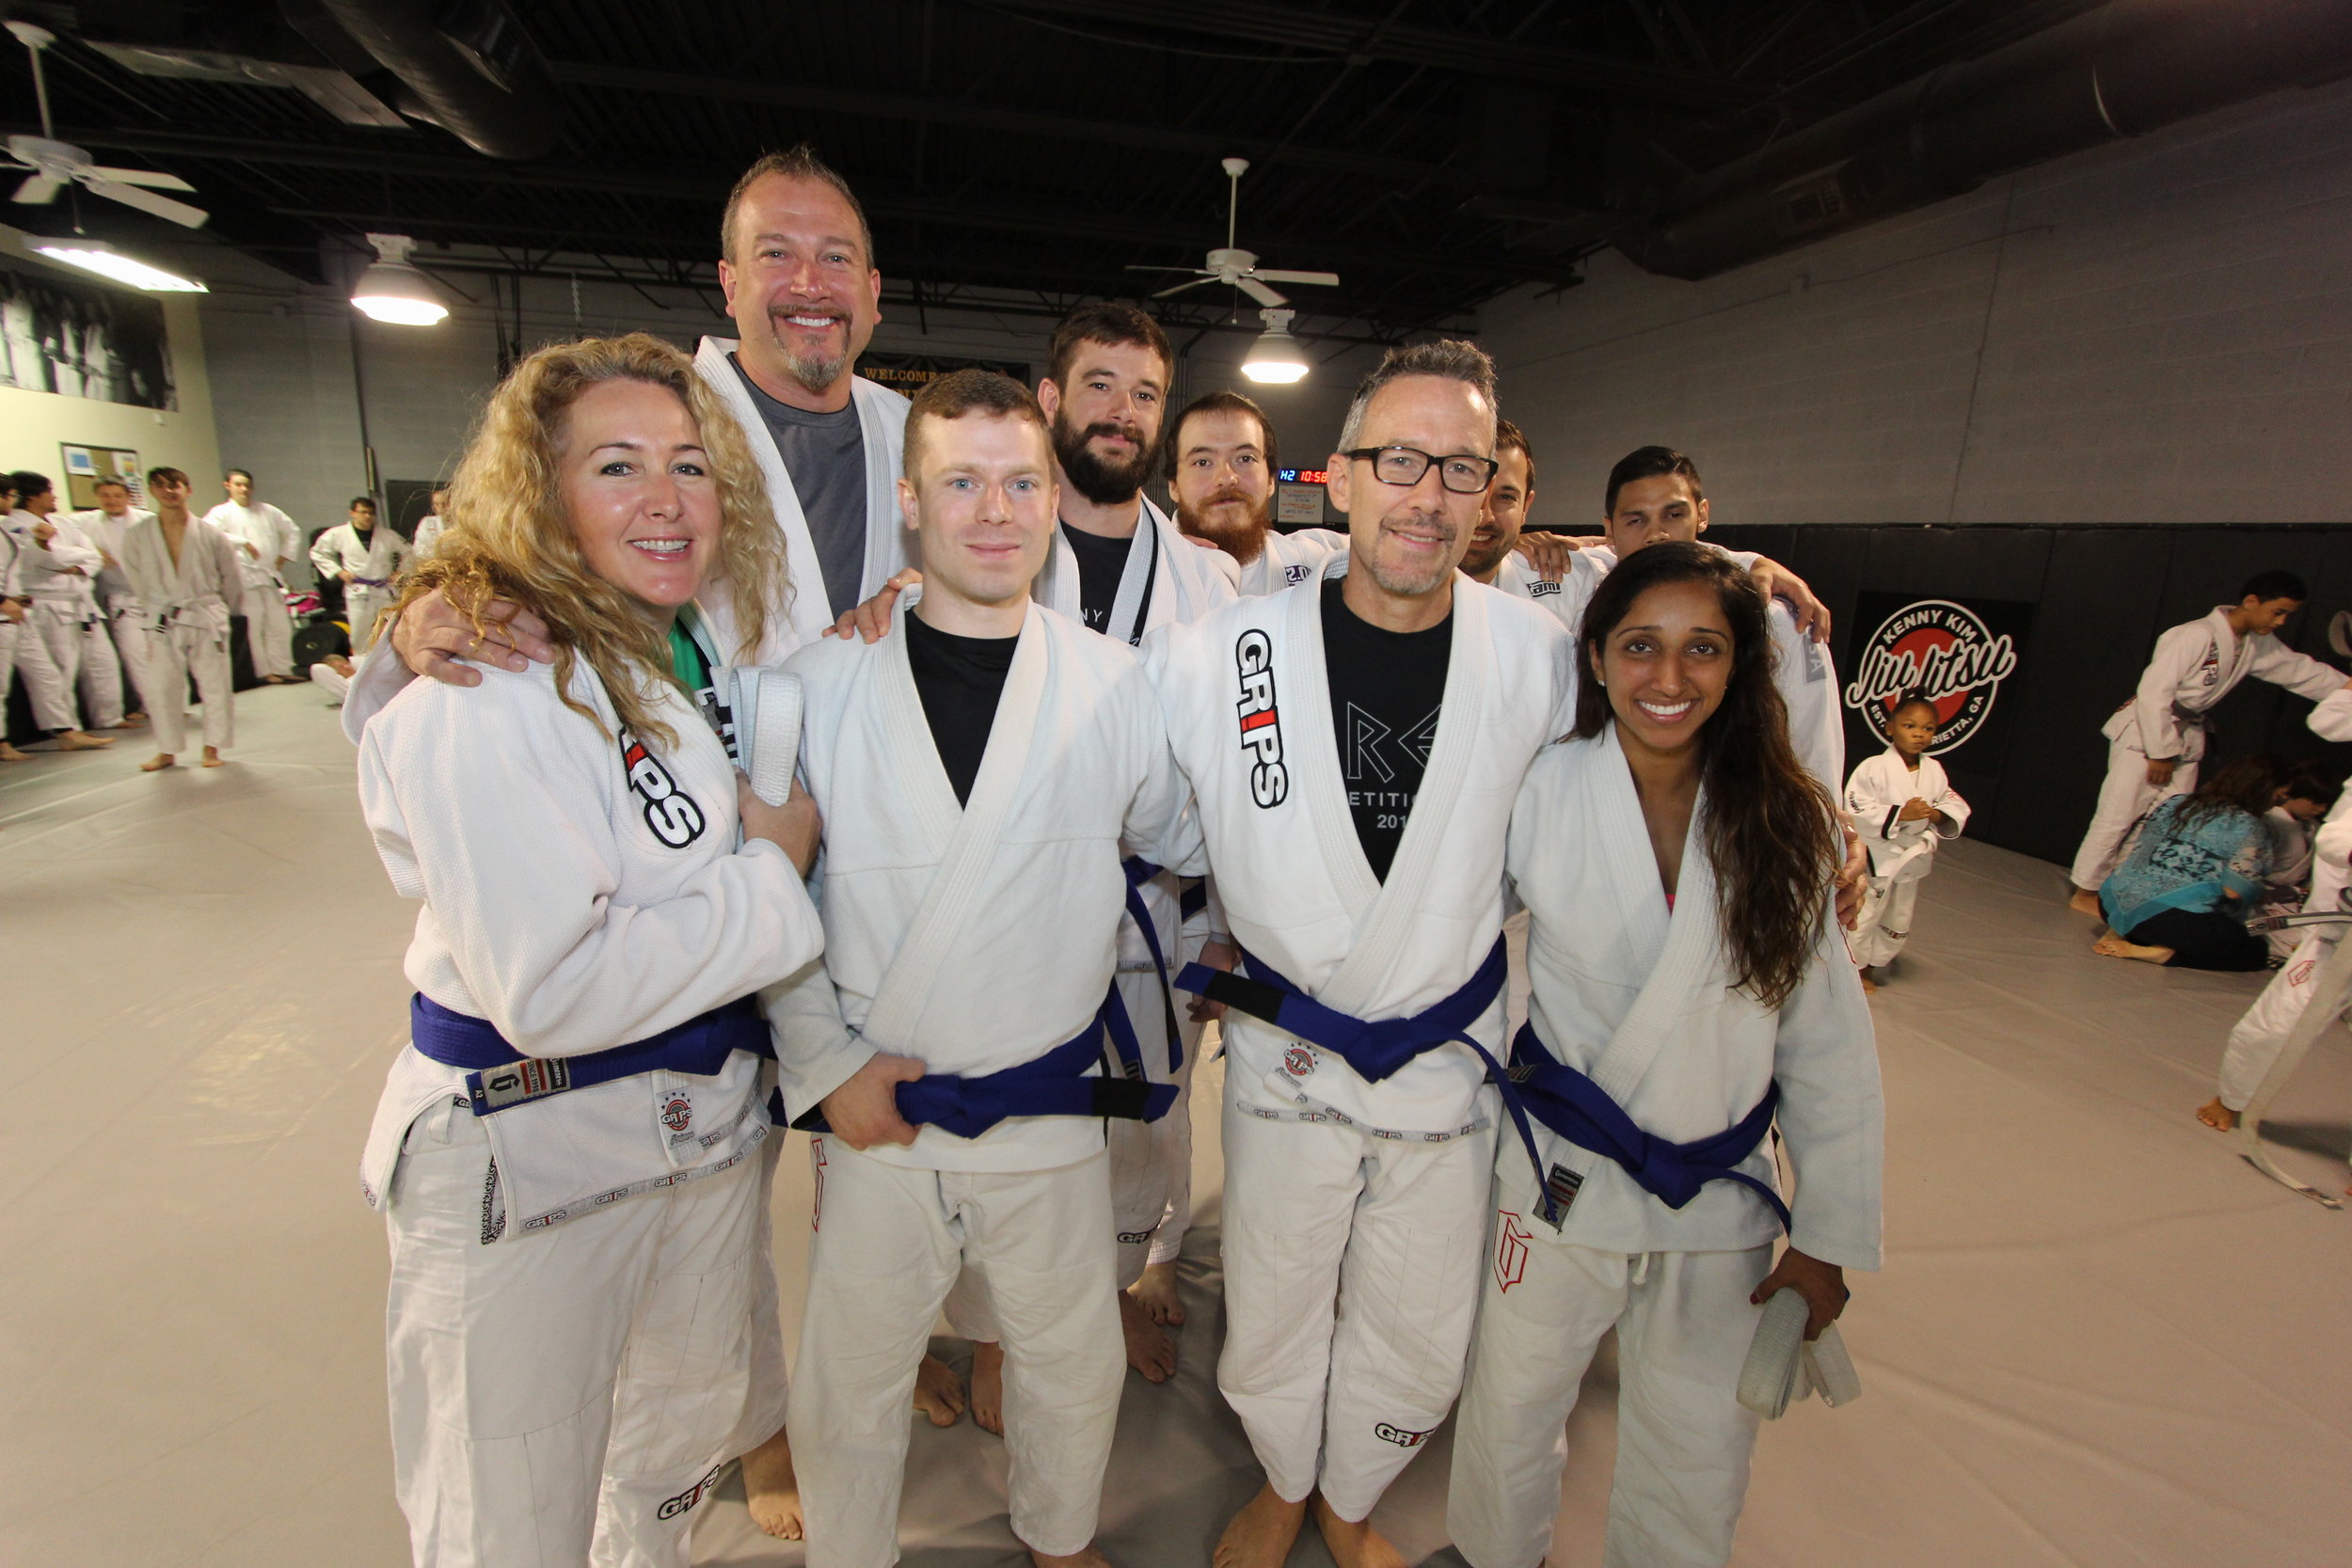 Congrats to Suzanne Martin, Russ Martin, Brandon Foy, Wes Butsch, Justin Hubbard, Alex Kay, and Sherri Dunn on their promotion to Blue Belt and Chris Scott on Purple Belt.